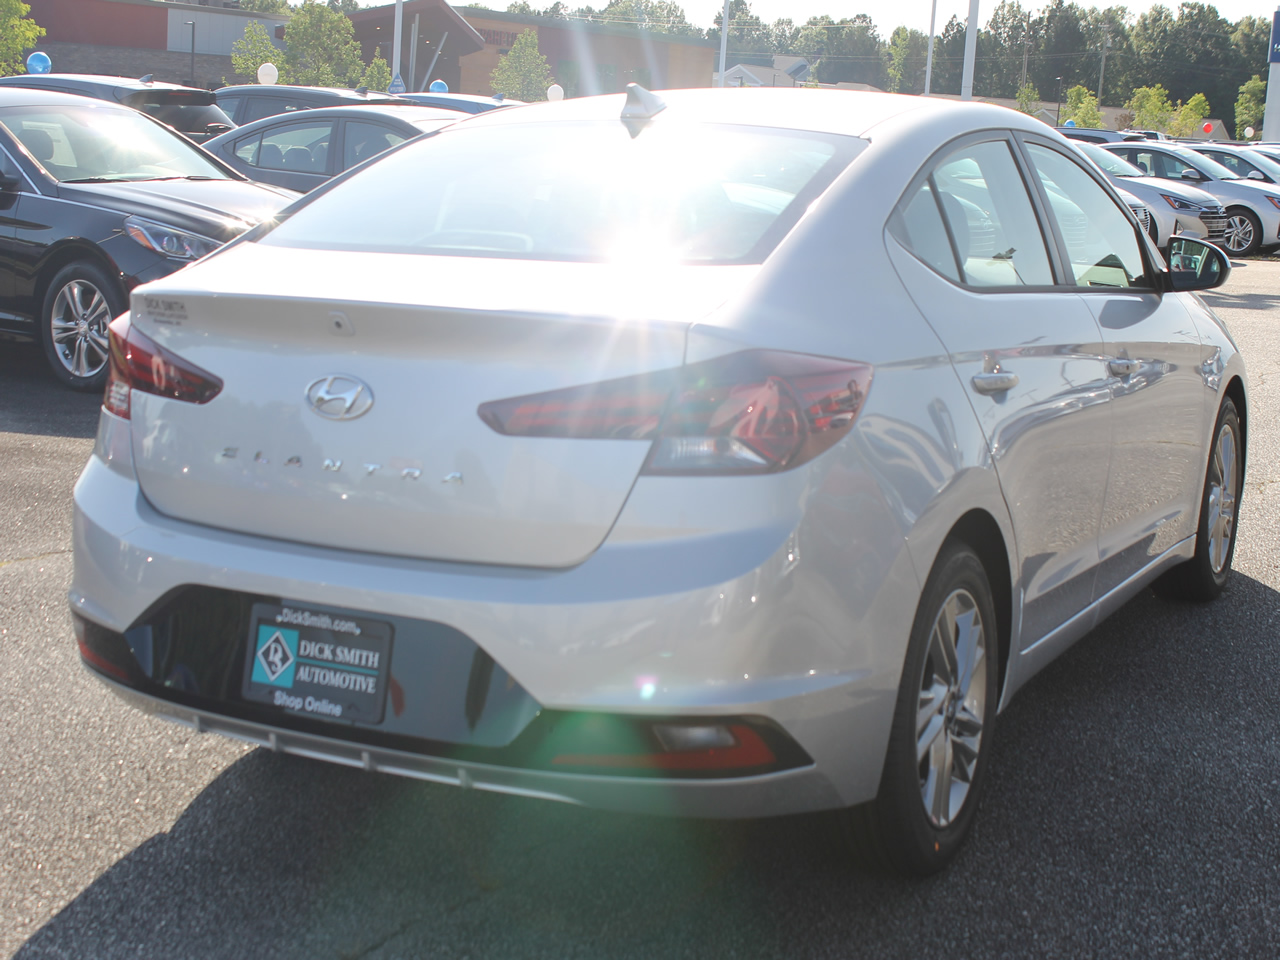 Vehicle Value By Vin >> New 2020 Hyundai Elantra Value Edition Vin 5npd84lf2lh499411